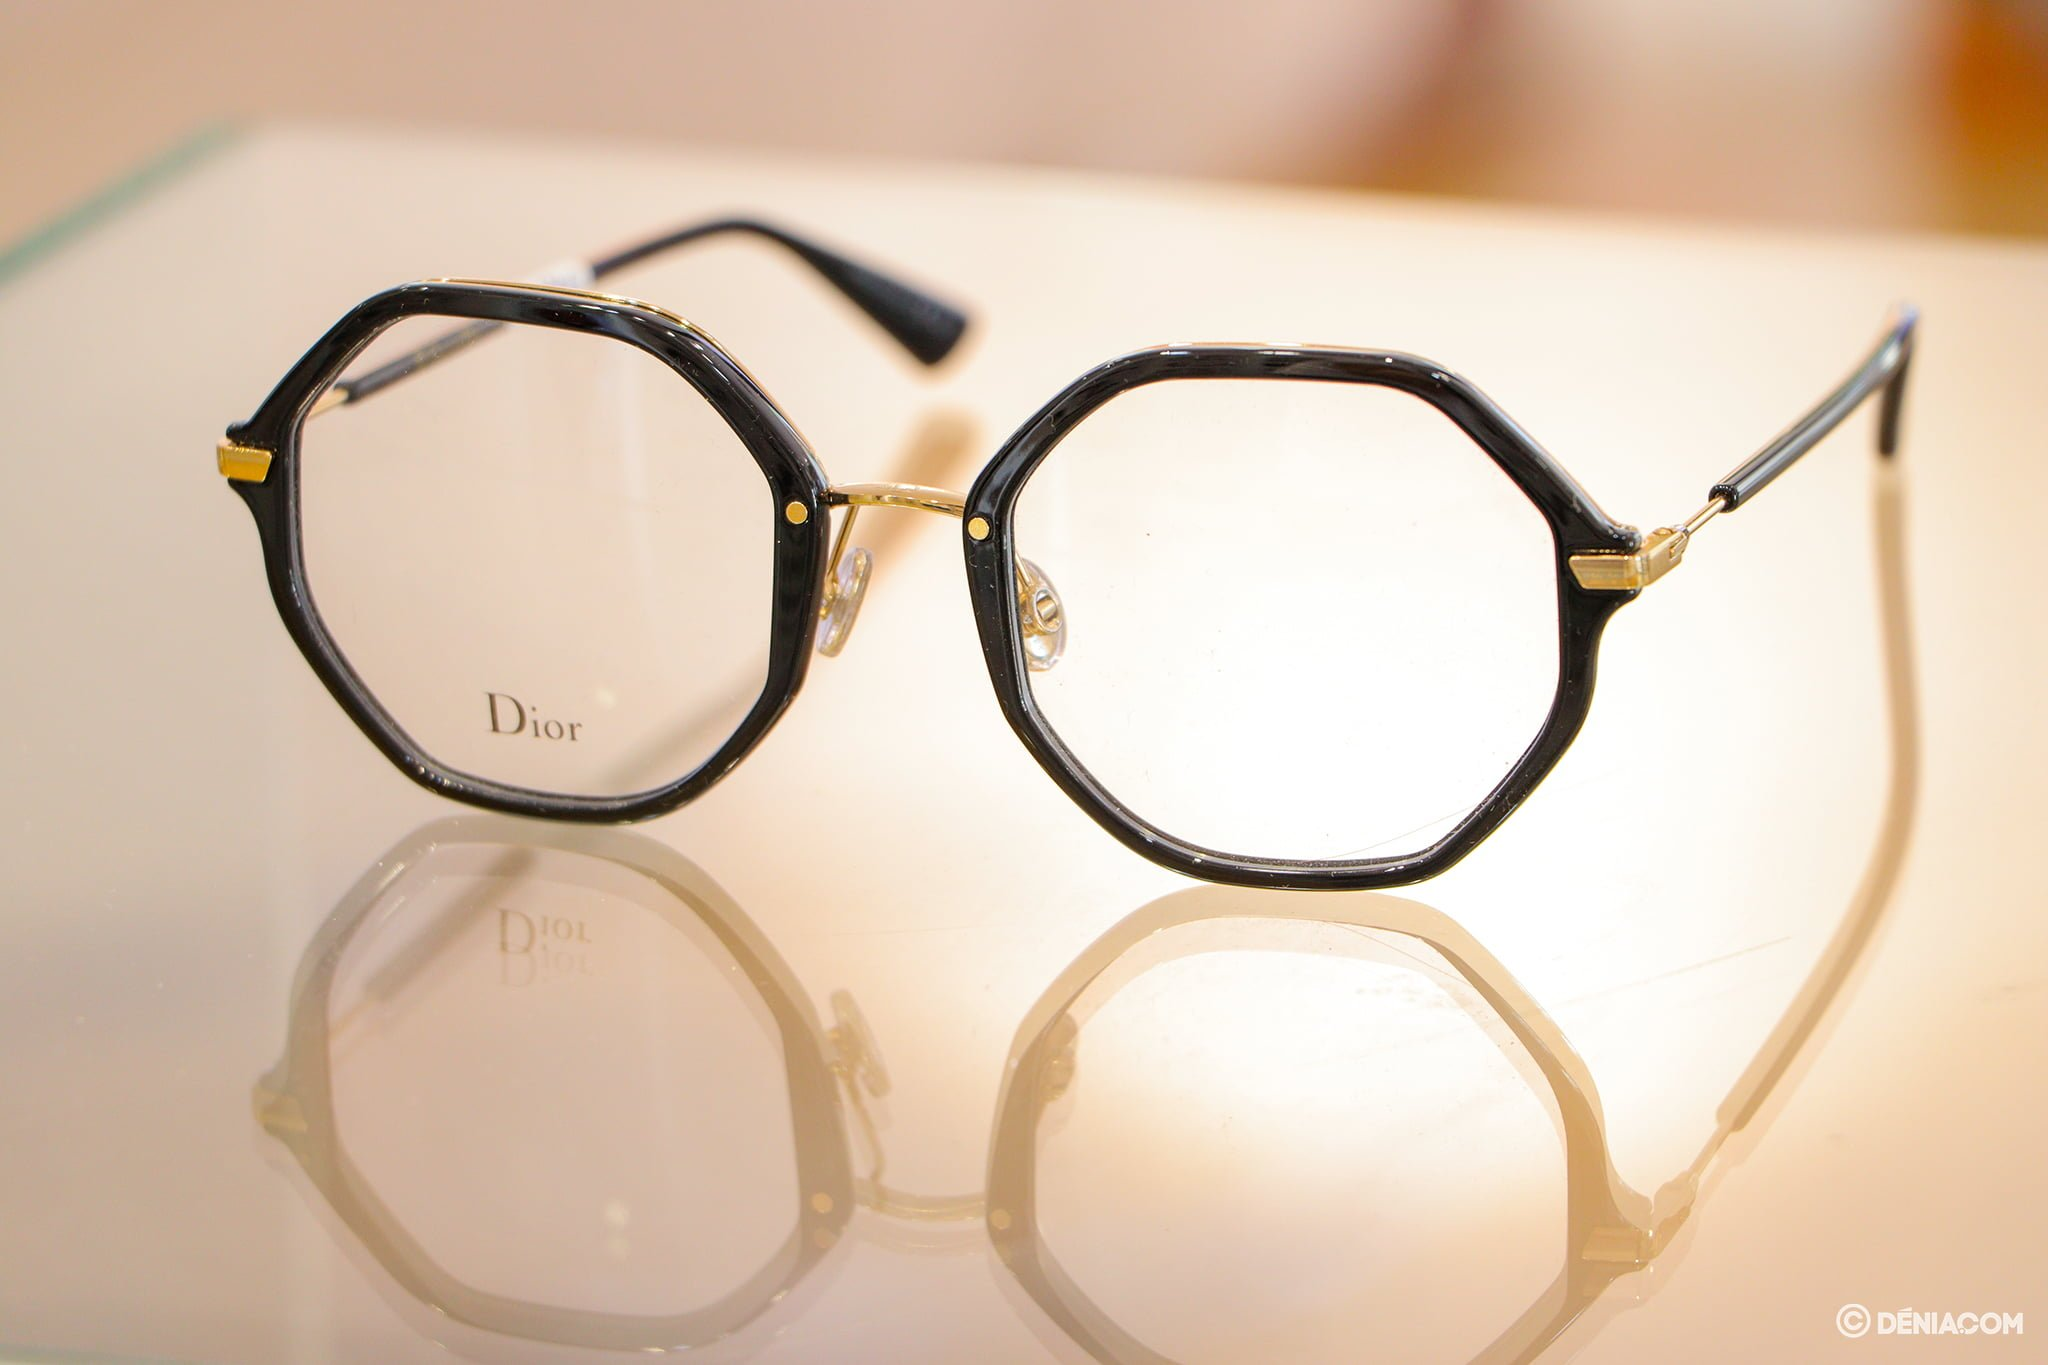 Dénia eyeglasses - Benjamin Optics